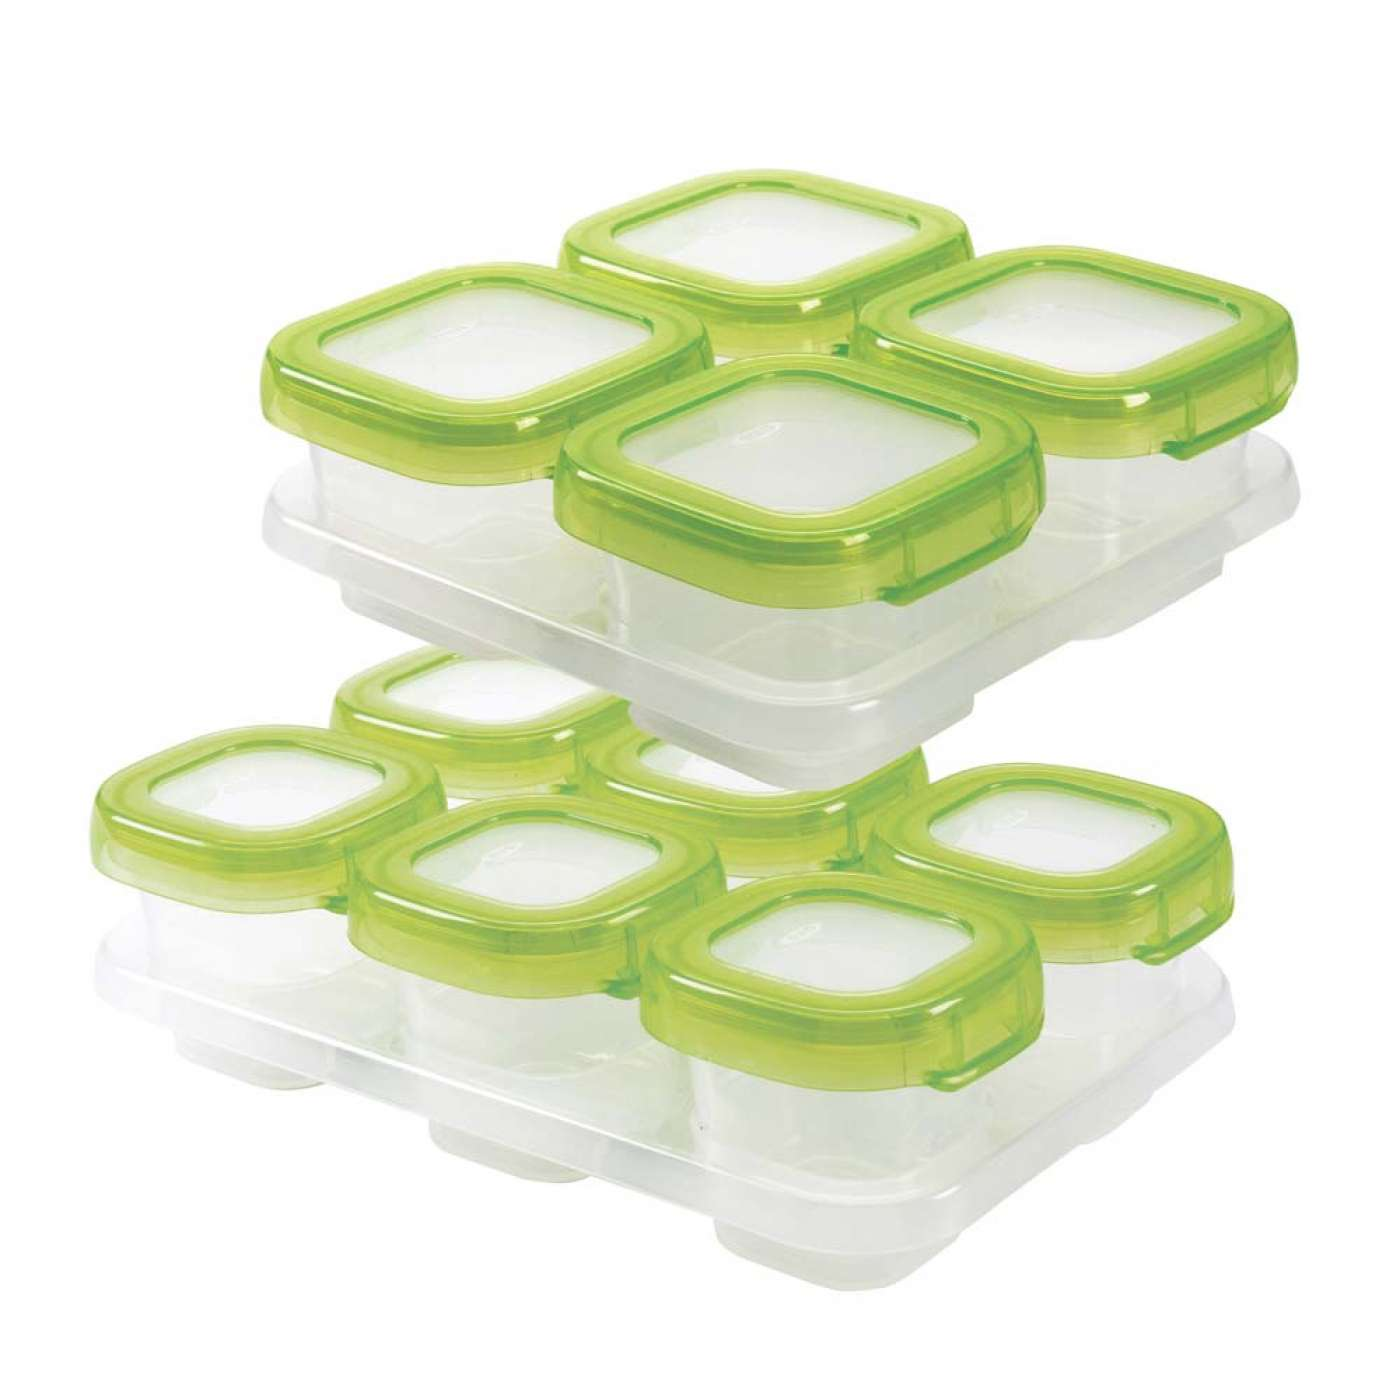 Oxo Tot Baby Blocks Freezer Storage Containers 12 Piece Promo Pack